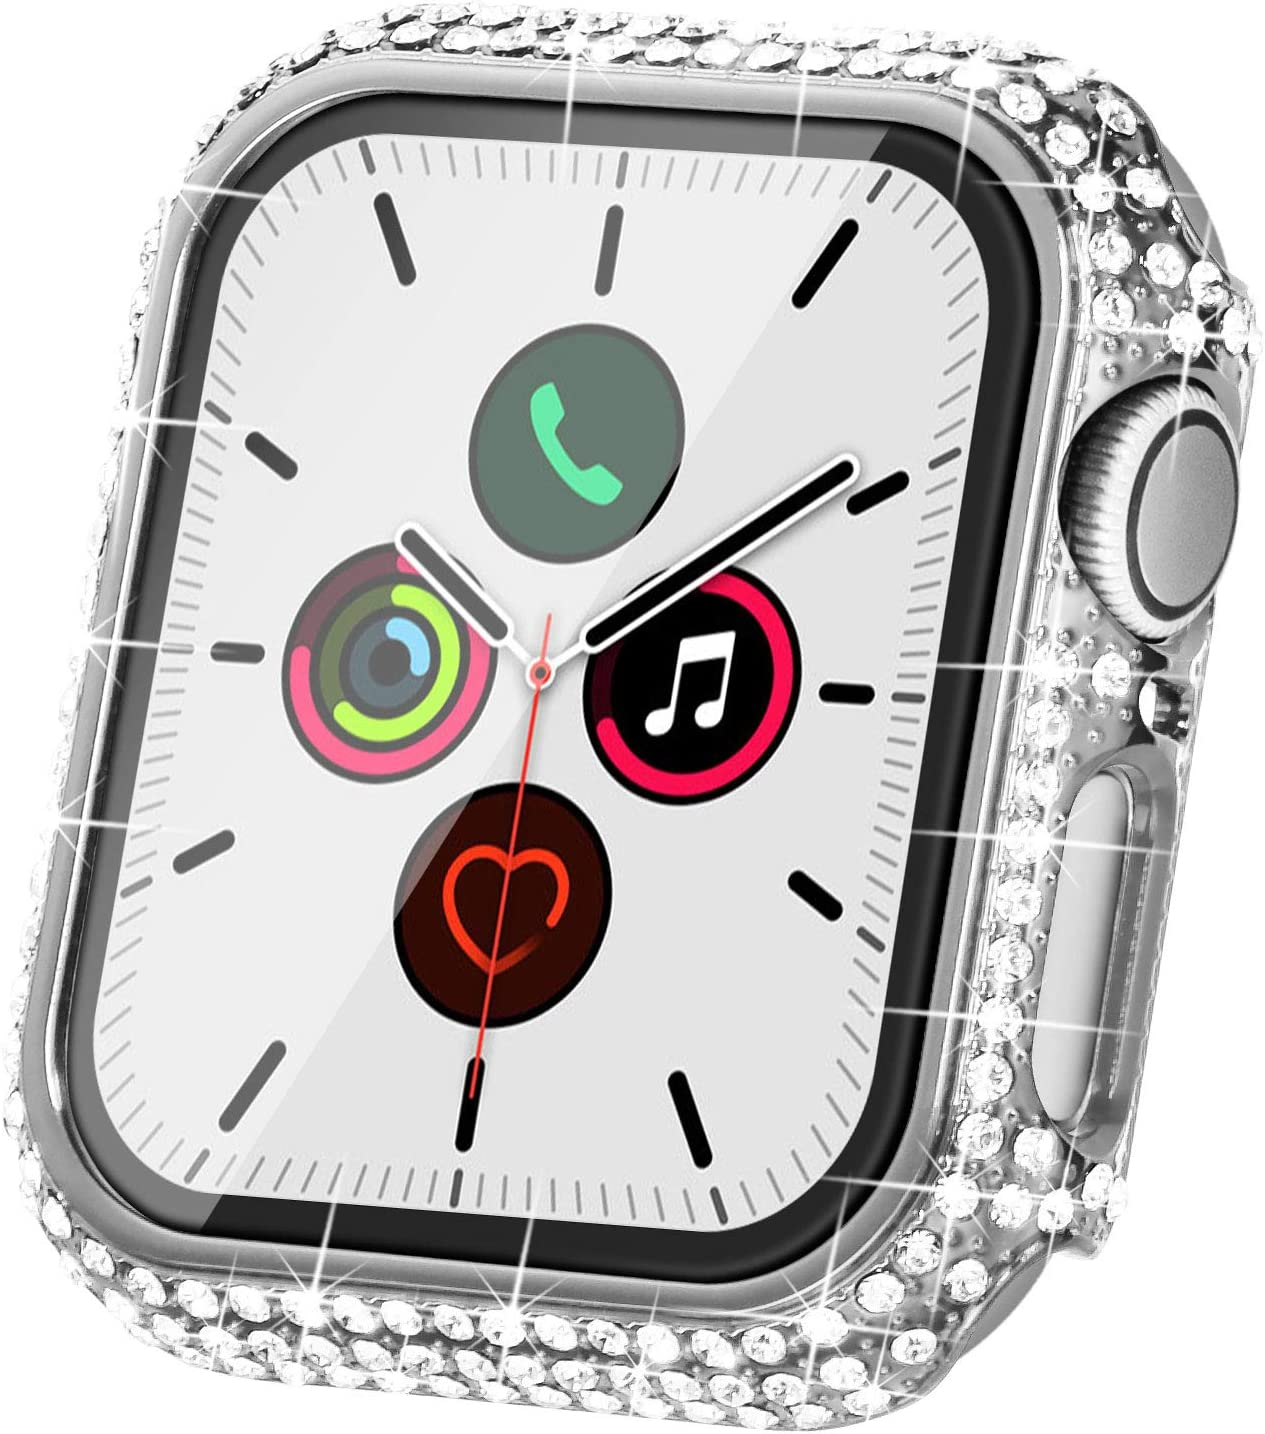 Fullife Compatible with Apple Watch Case, Bling Cases Replacement for Apple Watch 38mm 40mm 42mm 44mm Protective Bumper for Compatible with Apple Watch Series 5 4 3 2 1 (42mm-Silver)